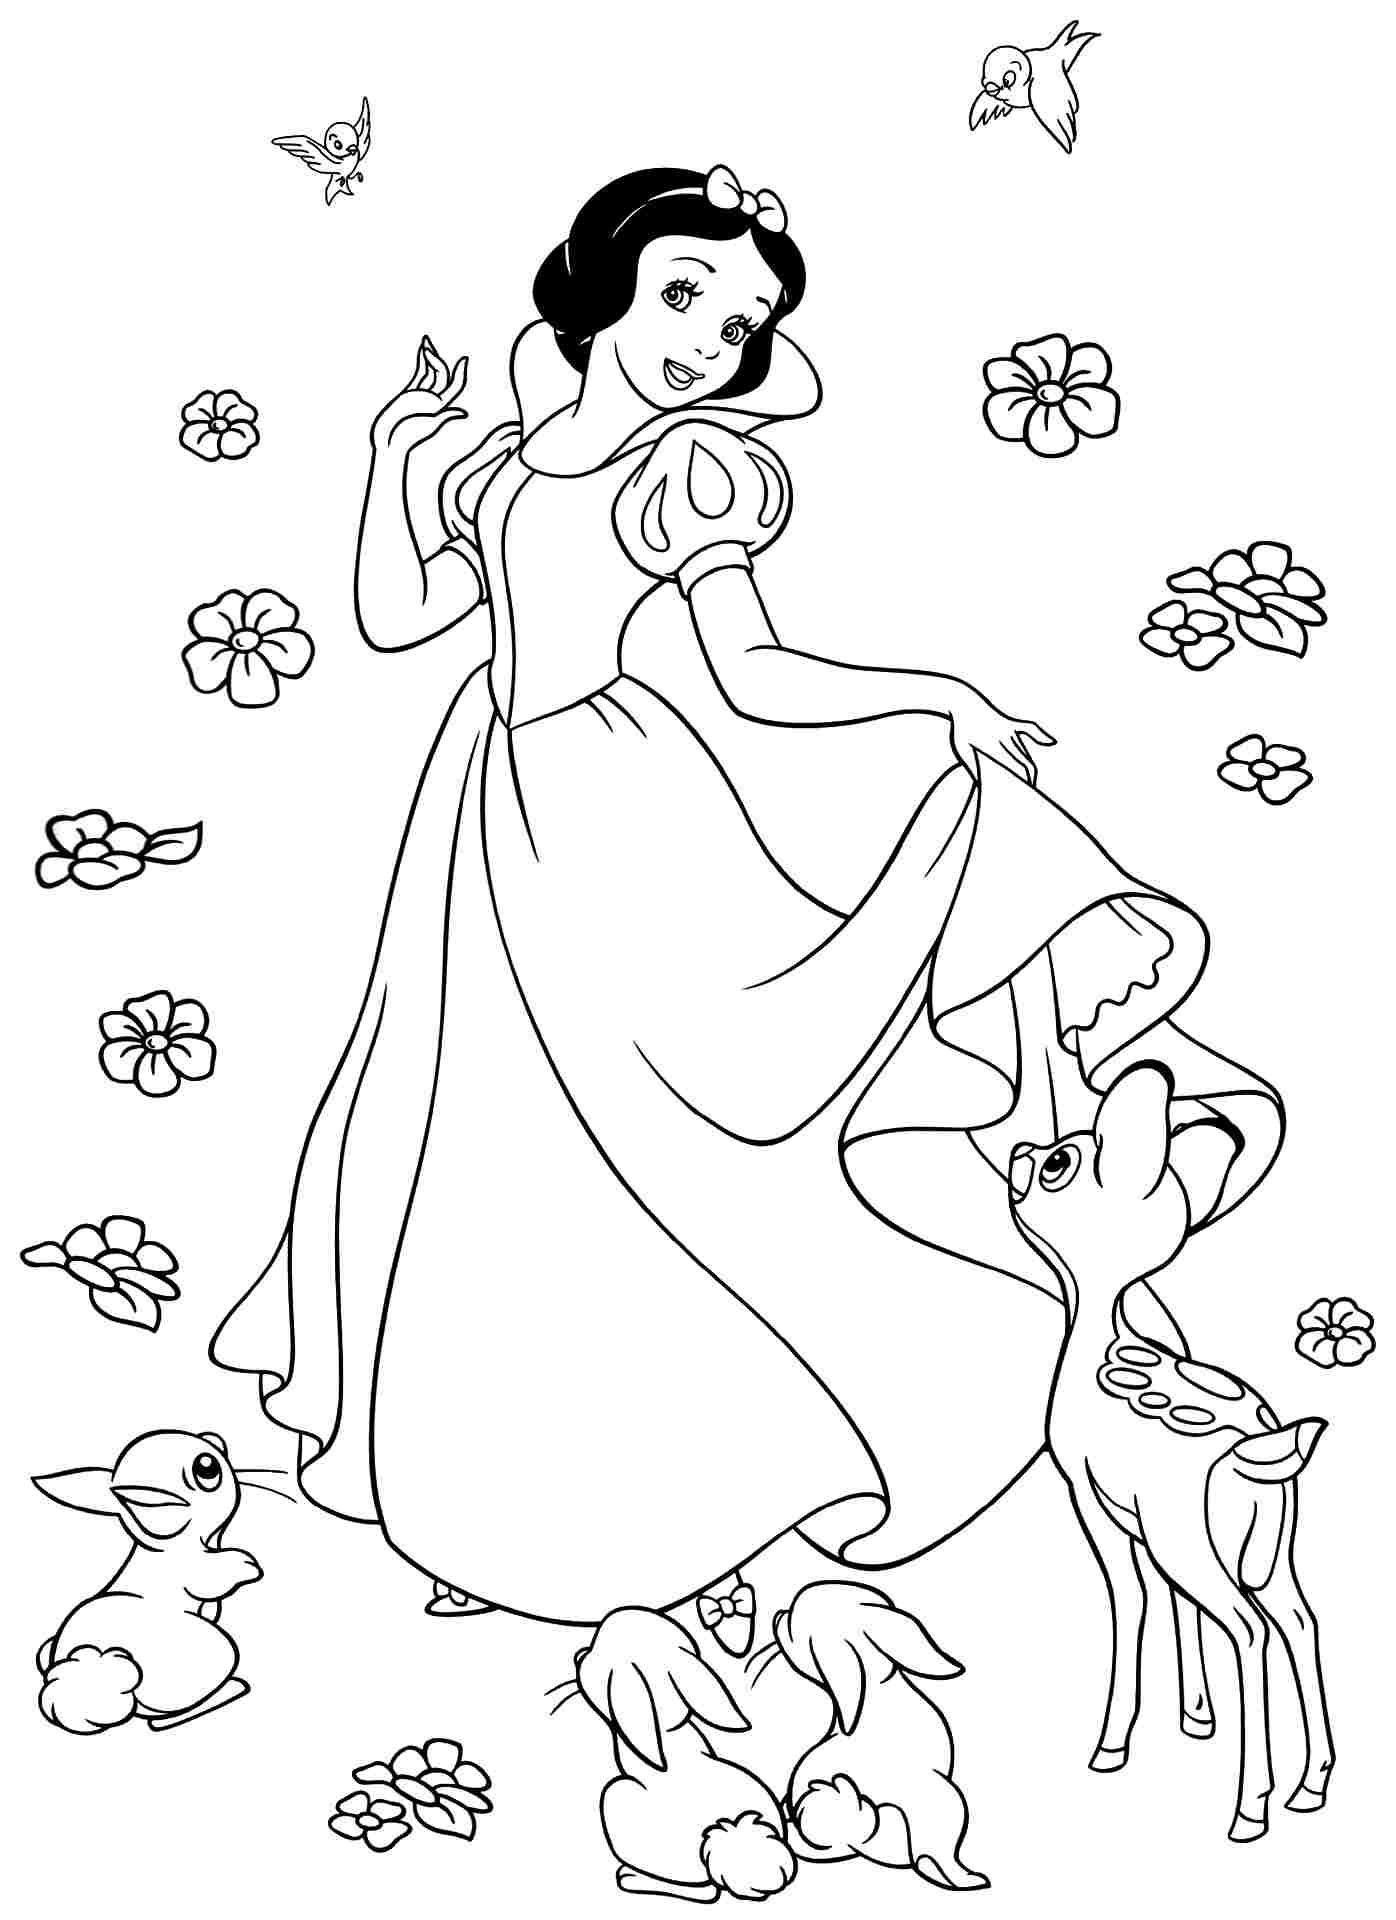 Snow White And The Seven Dwarfs Coloring Pages 49 Jpg 1396 1920 Disney Princess Coloring Pages Snow White Coloring Pages Princess Coloring Pages